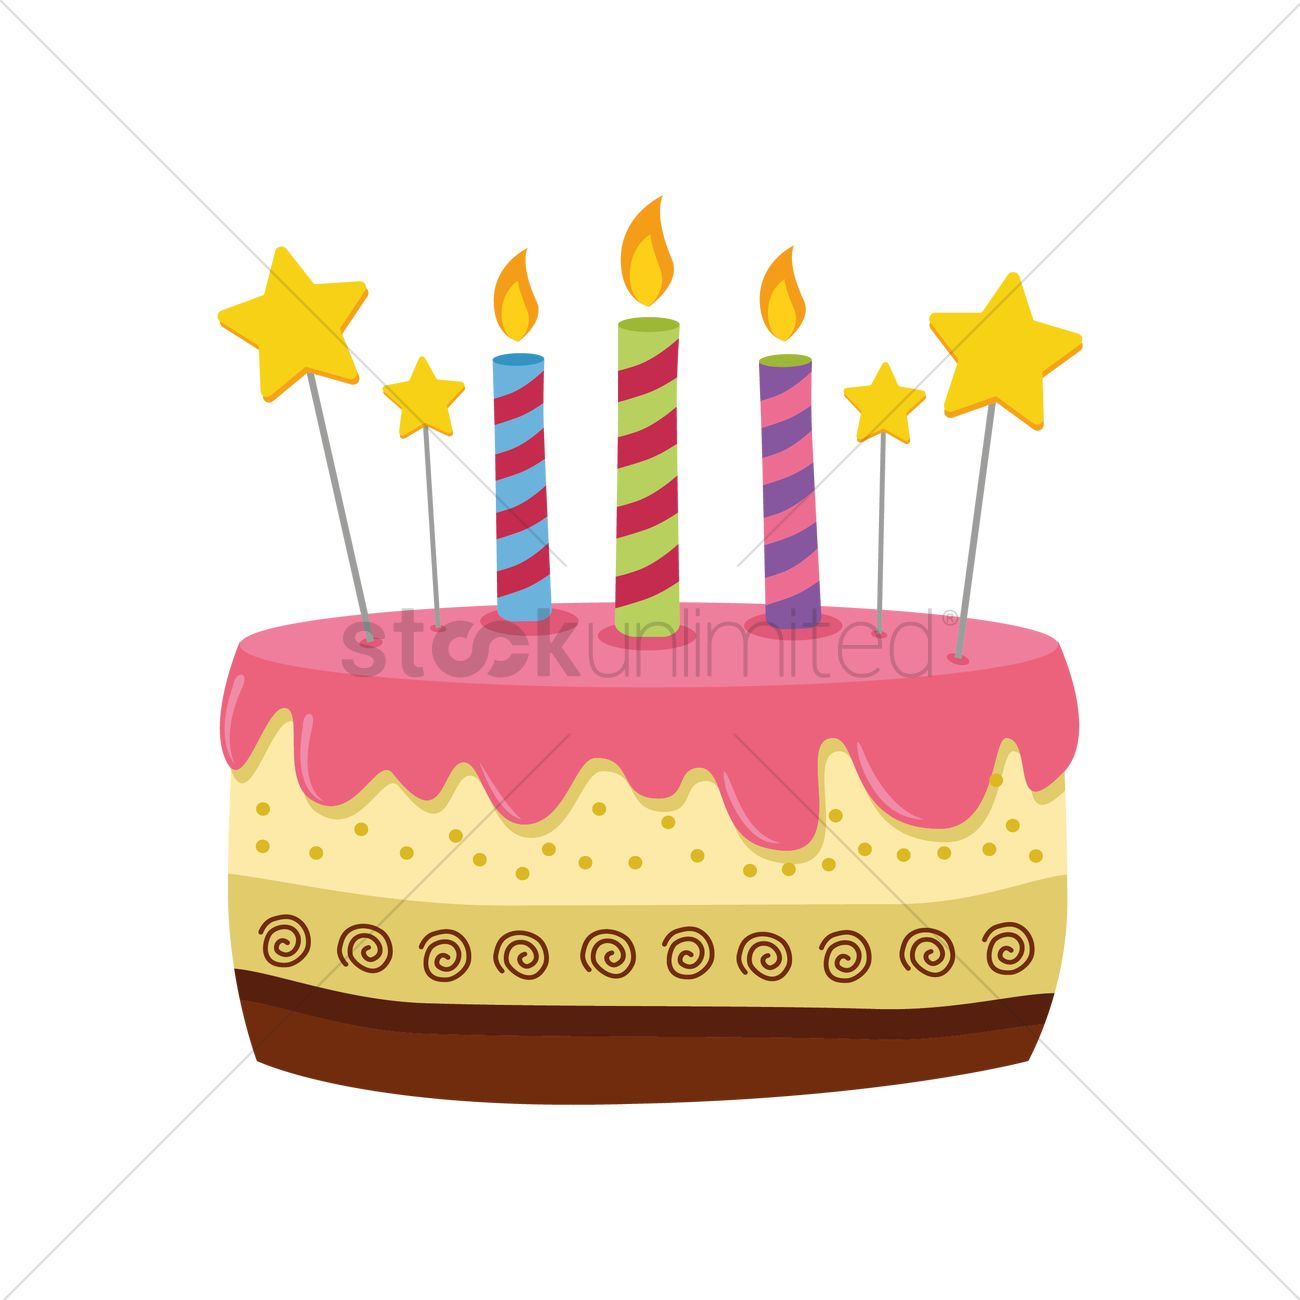 Astonishing Birthday Cake Vector Image 1389008 Stockunlimited Funny Birthday Cards Online Alyptdamsfinfo